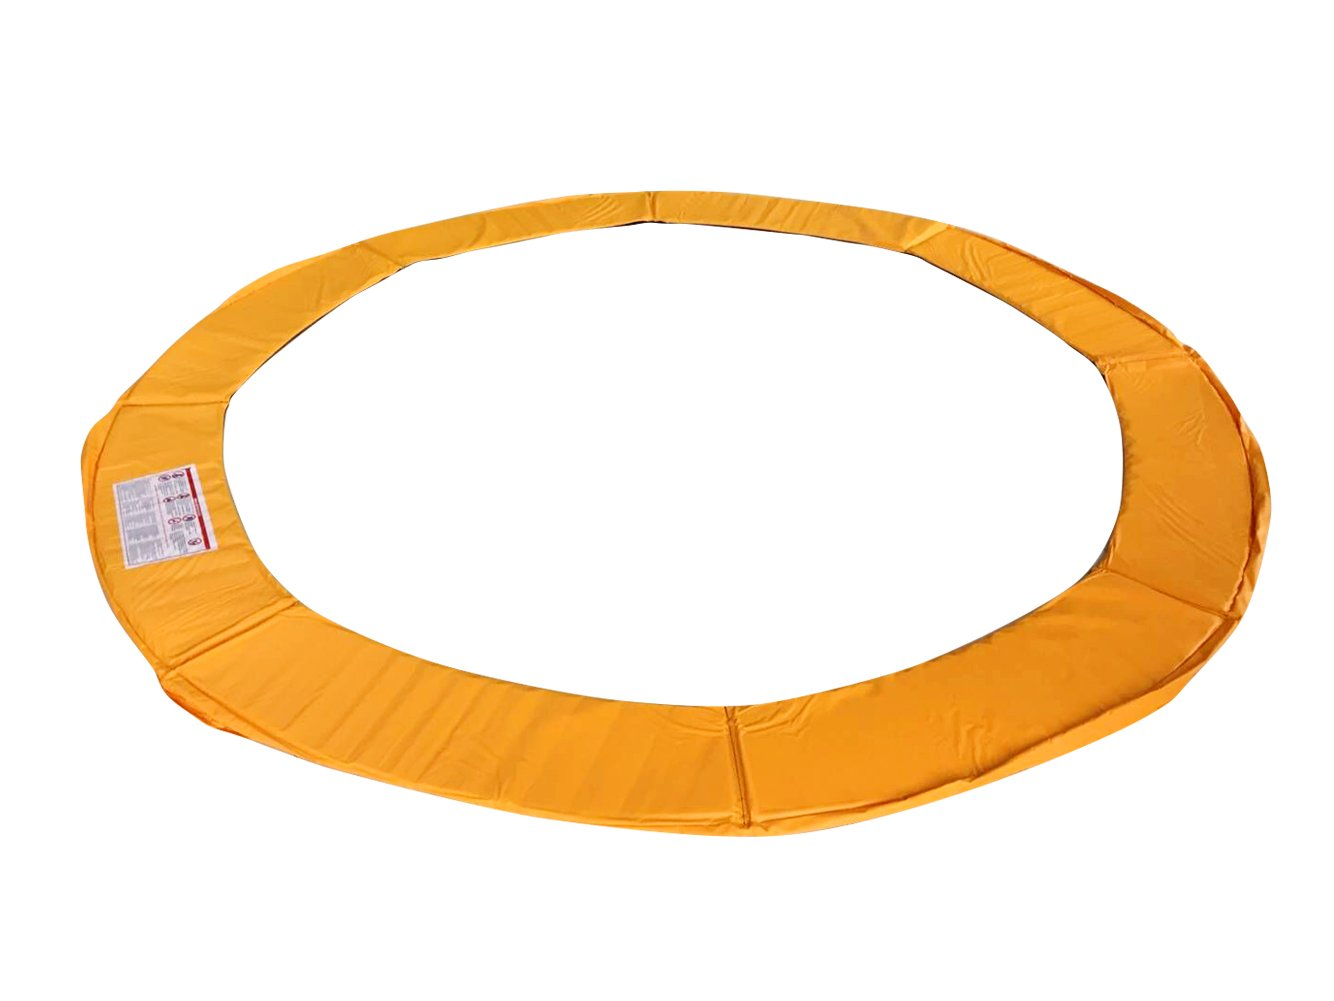 Exacme 16 Feet Trampoline Replacement Safety Spring Cover Round Frame Pad Without Holes, Orange by Exacme